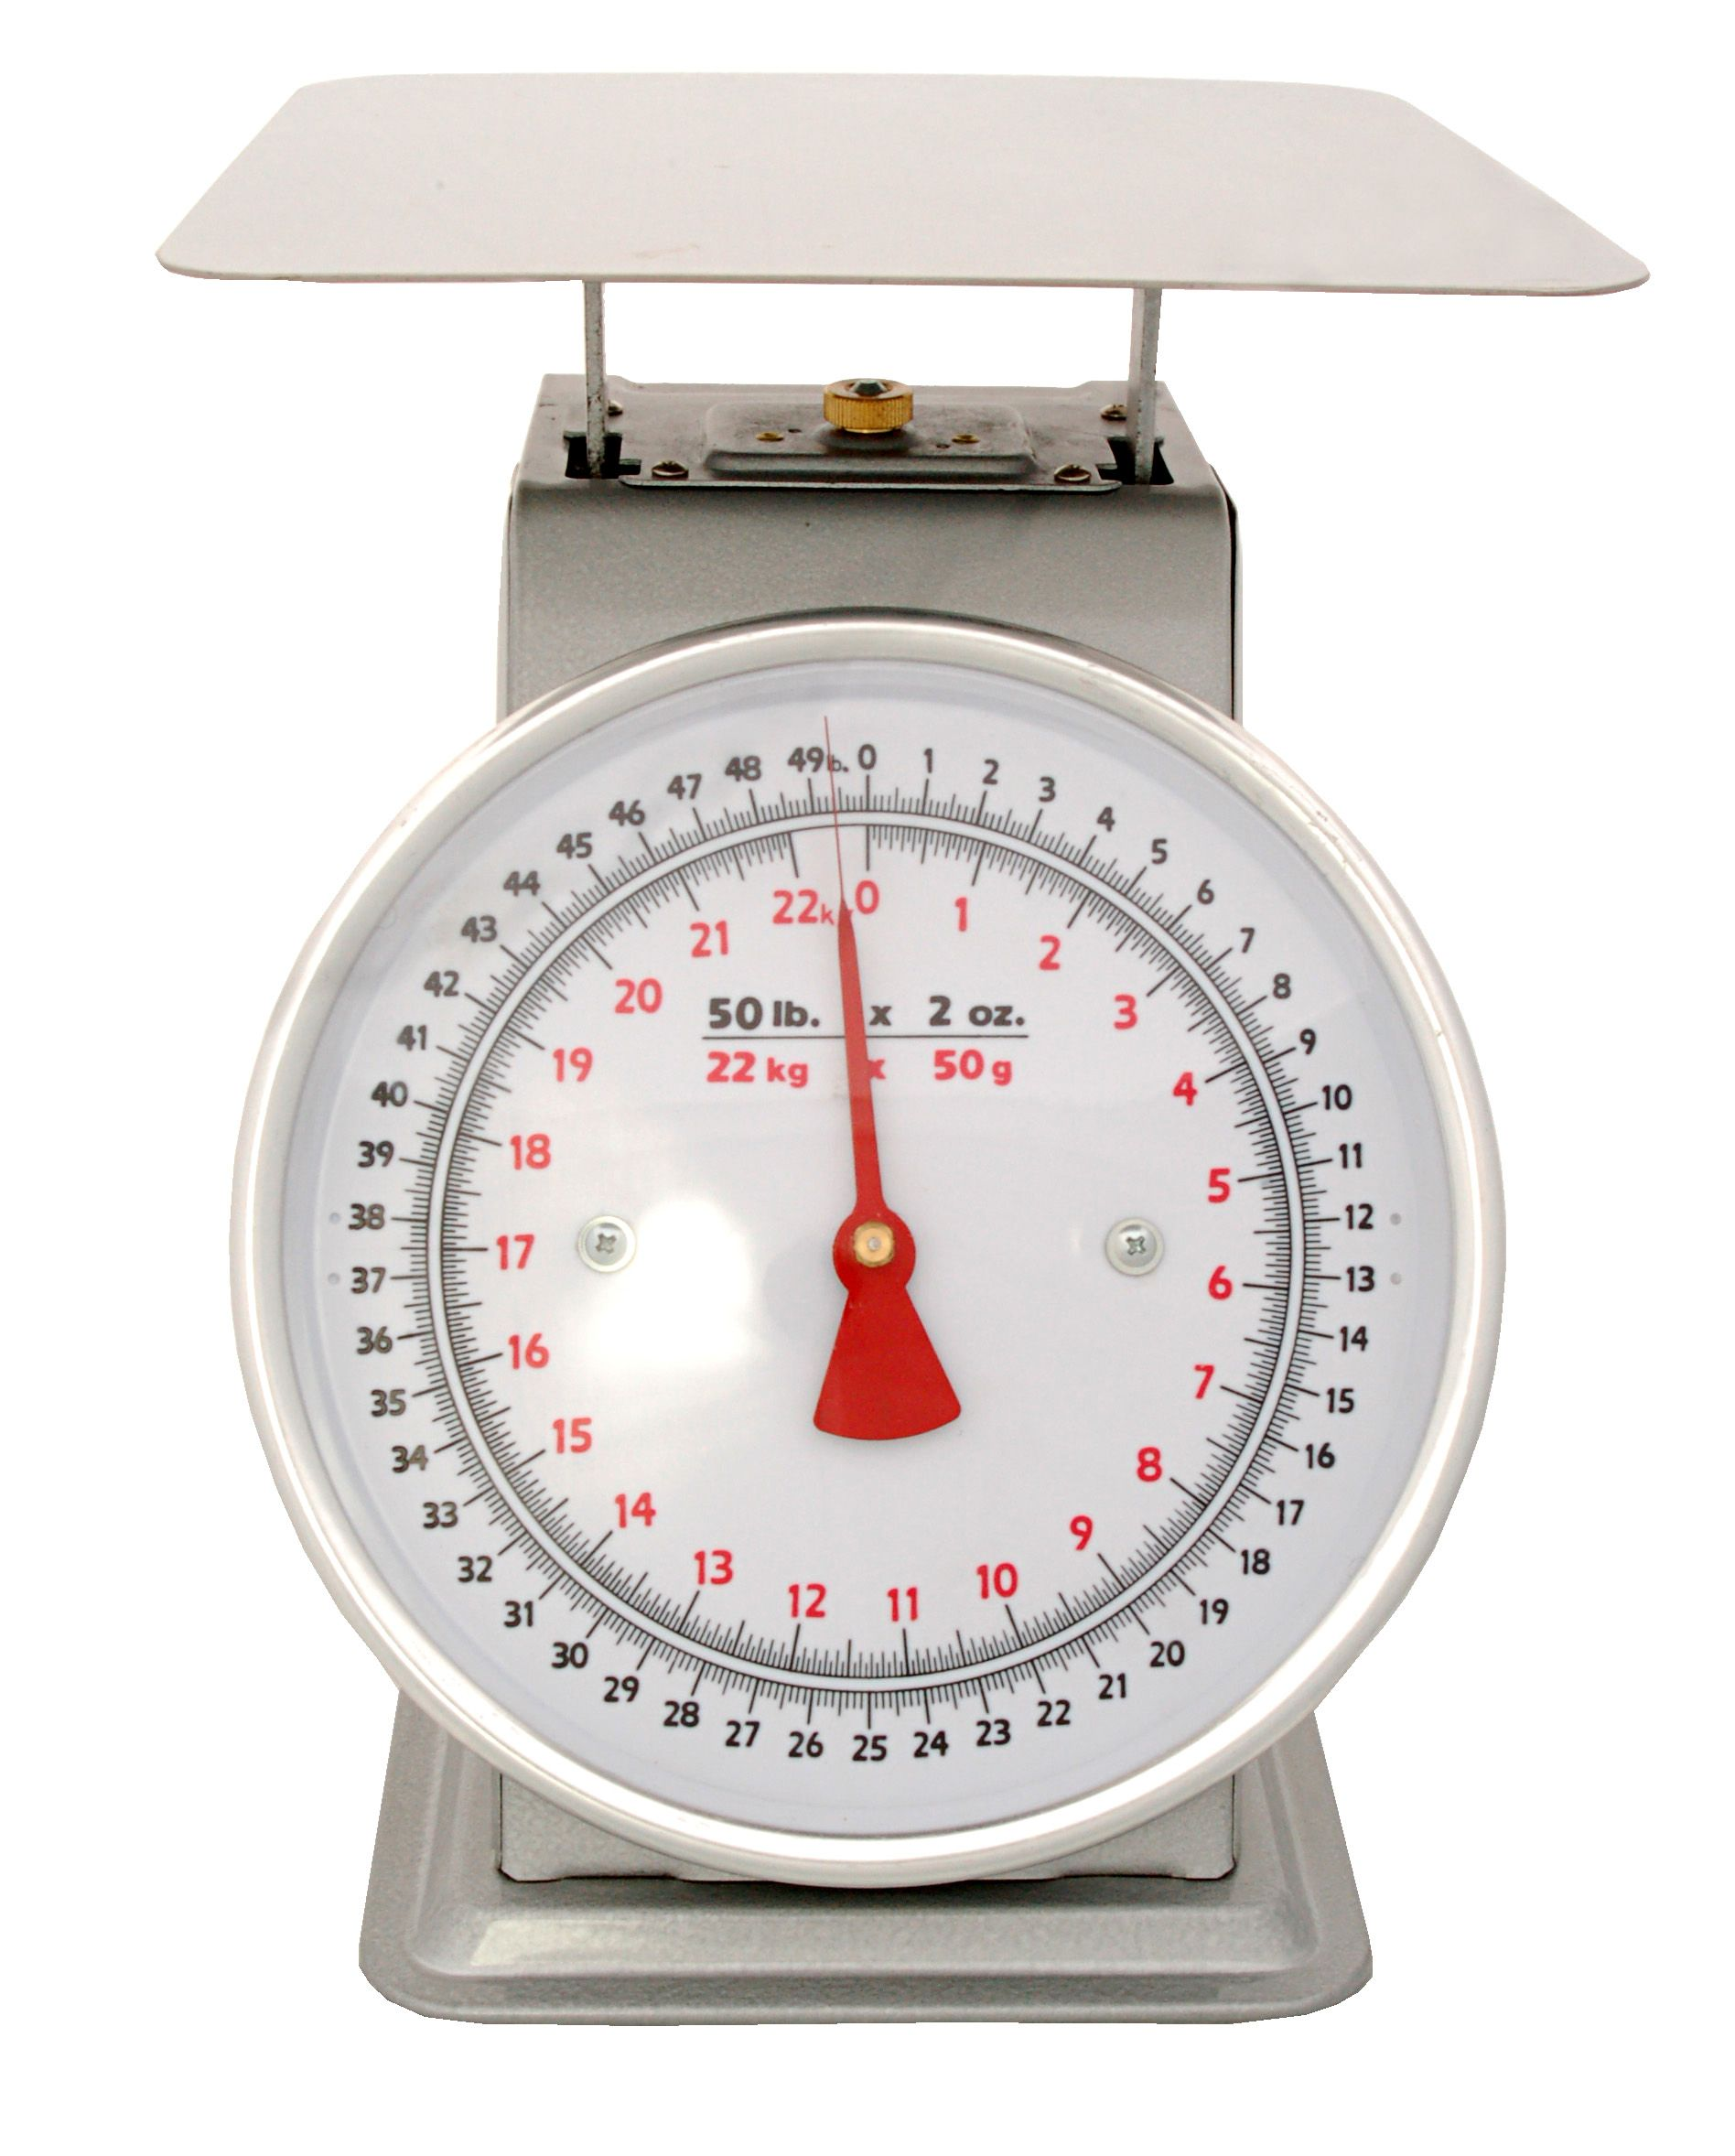 weighing scale metric - Google Search